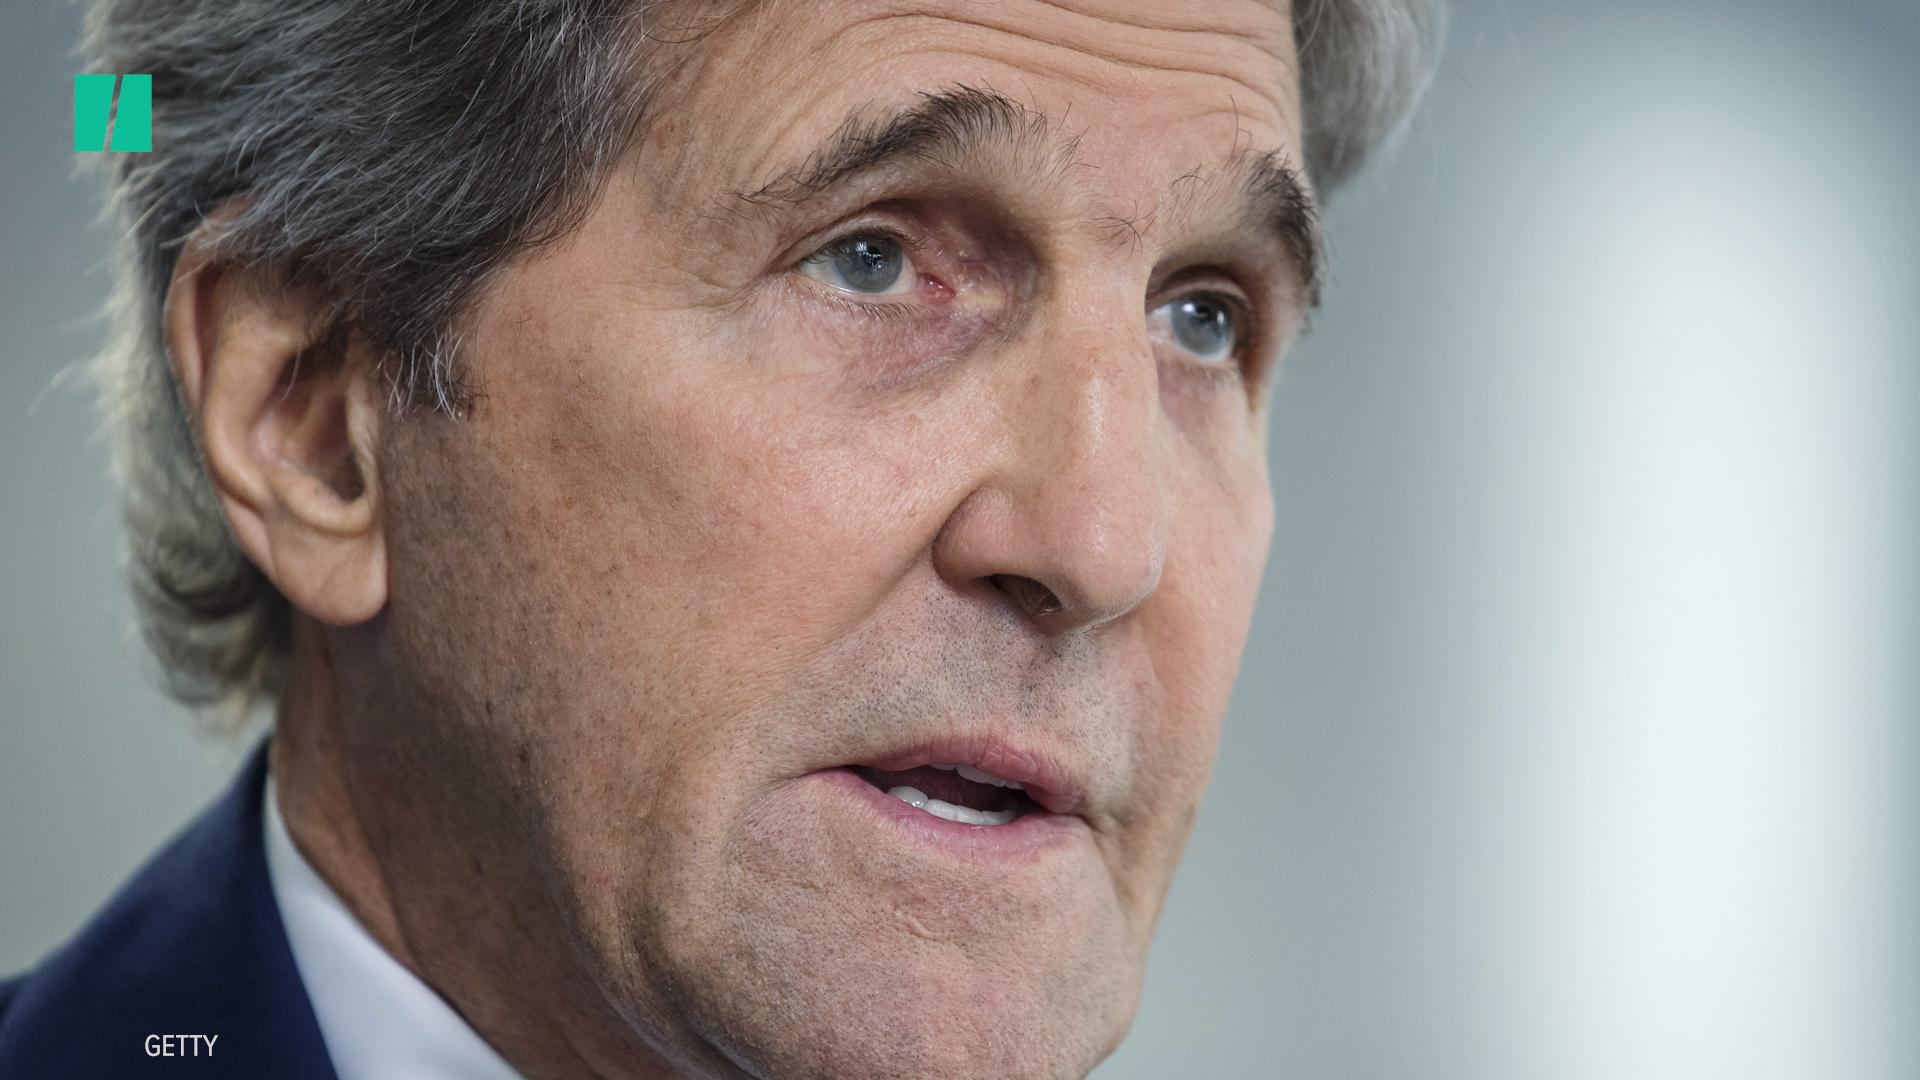 GOP Rep. Questions John Kerry's Credentials In Dumbest Possible Way